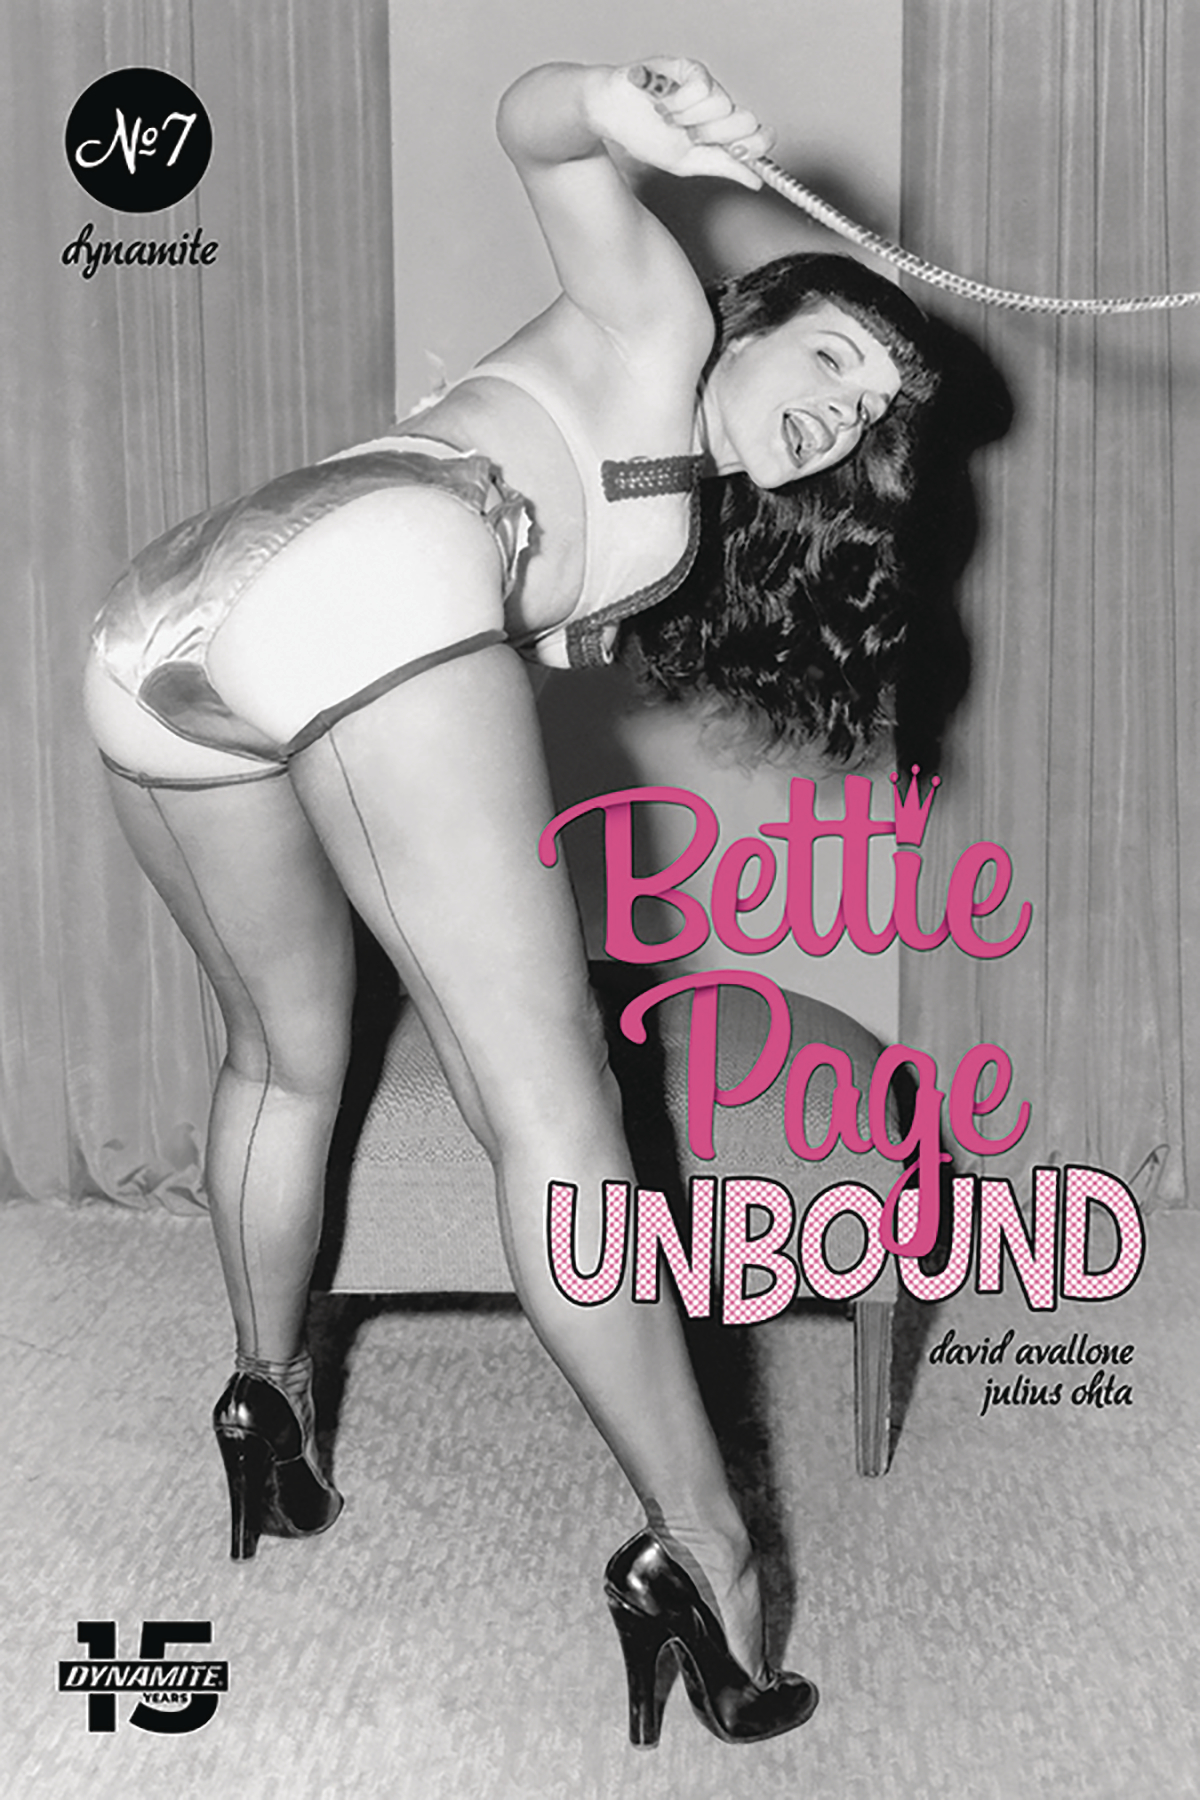 Bettie Page Hd aug191264 - bettie page unbound #7 cvr e photo - previews world